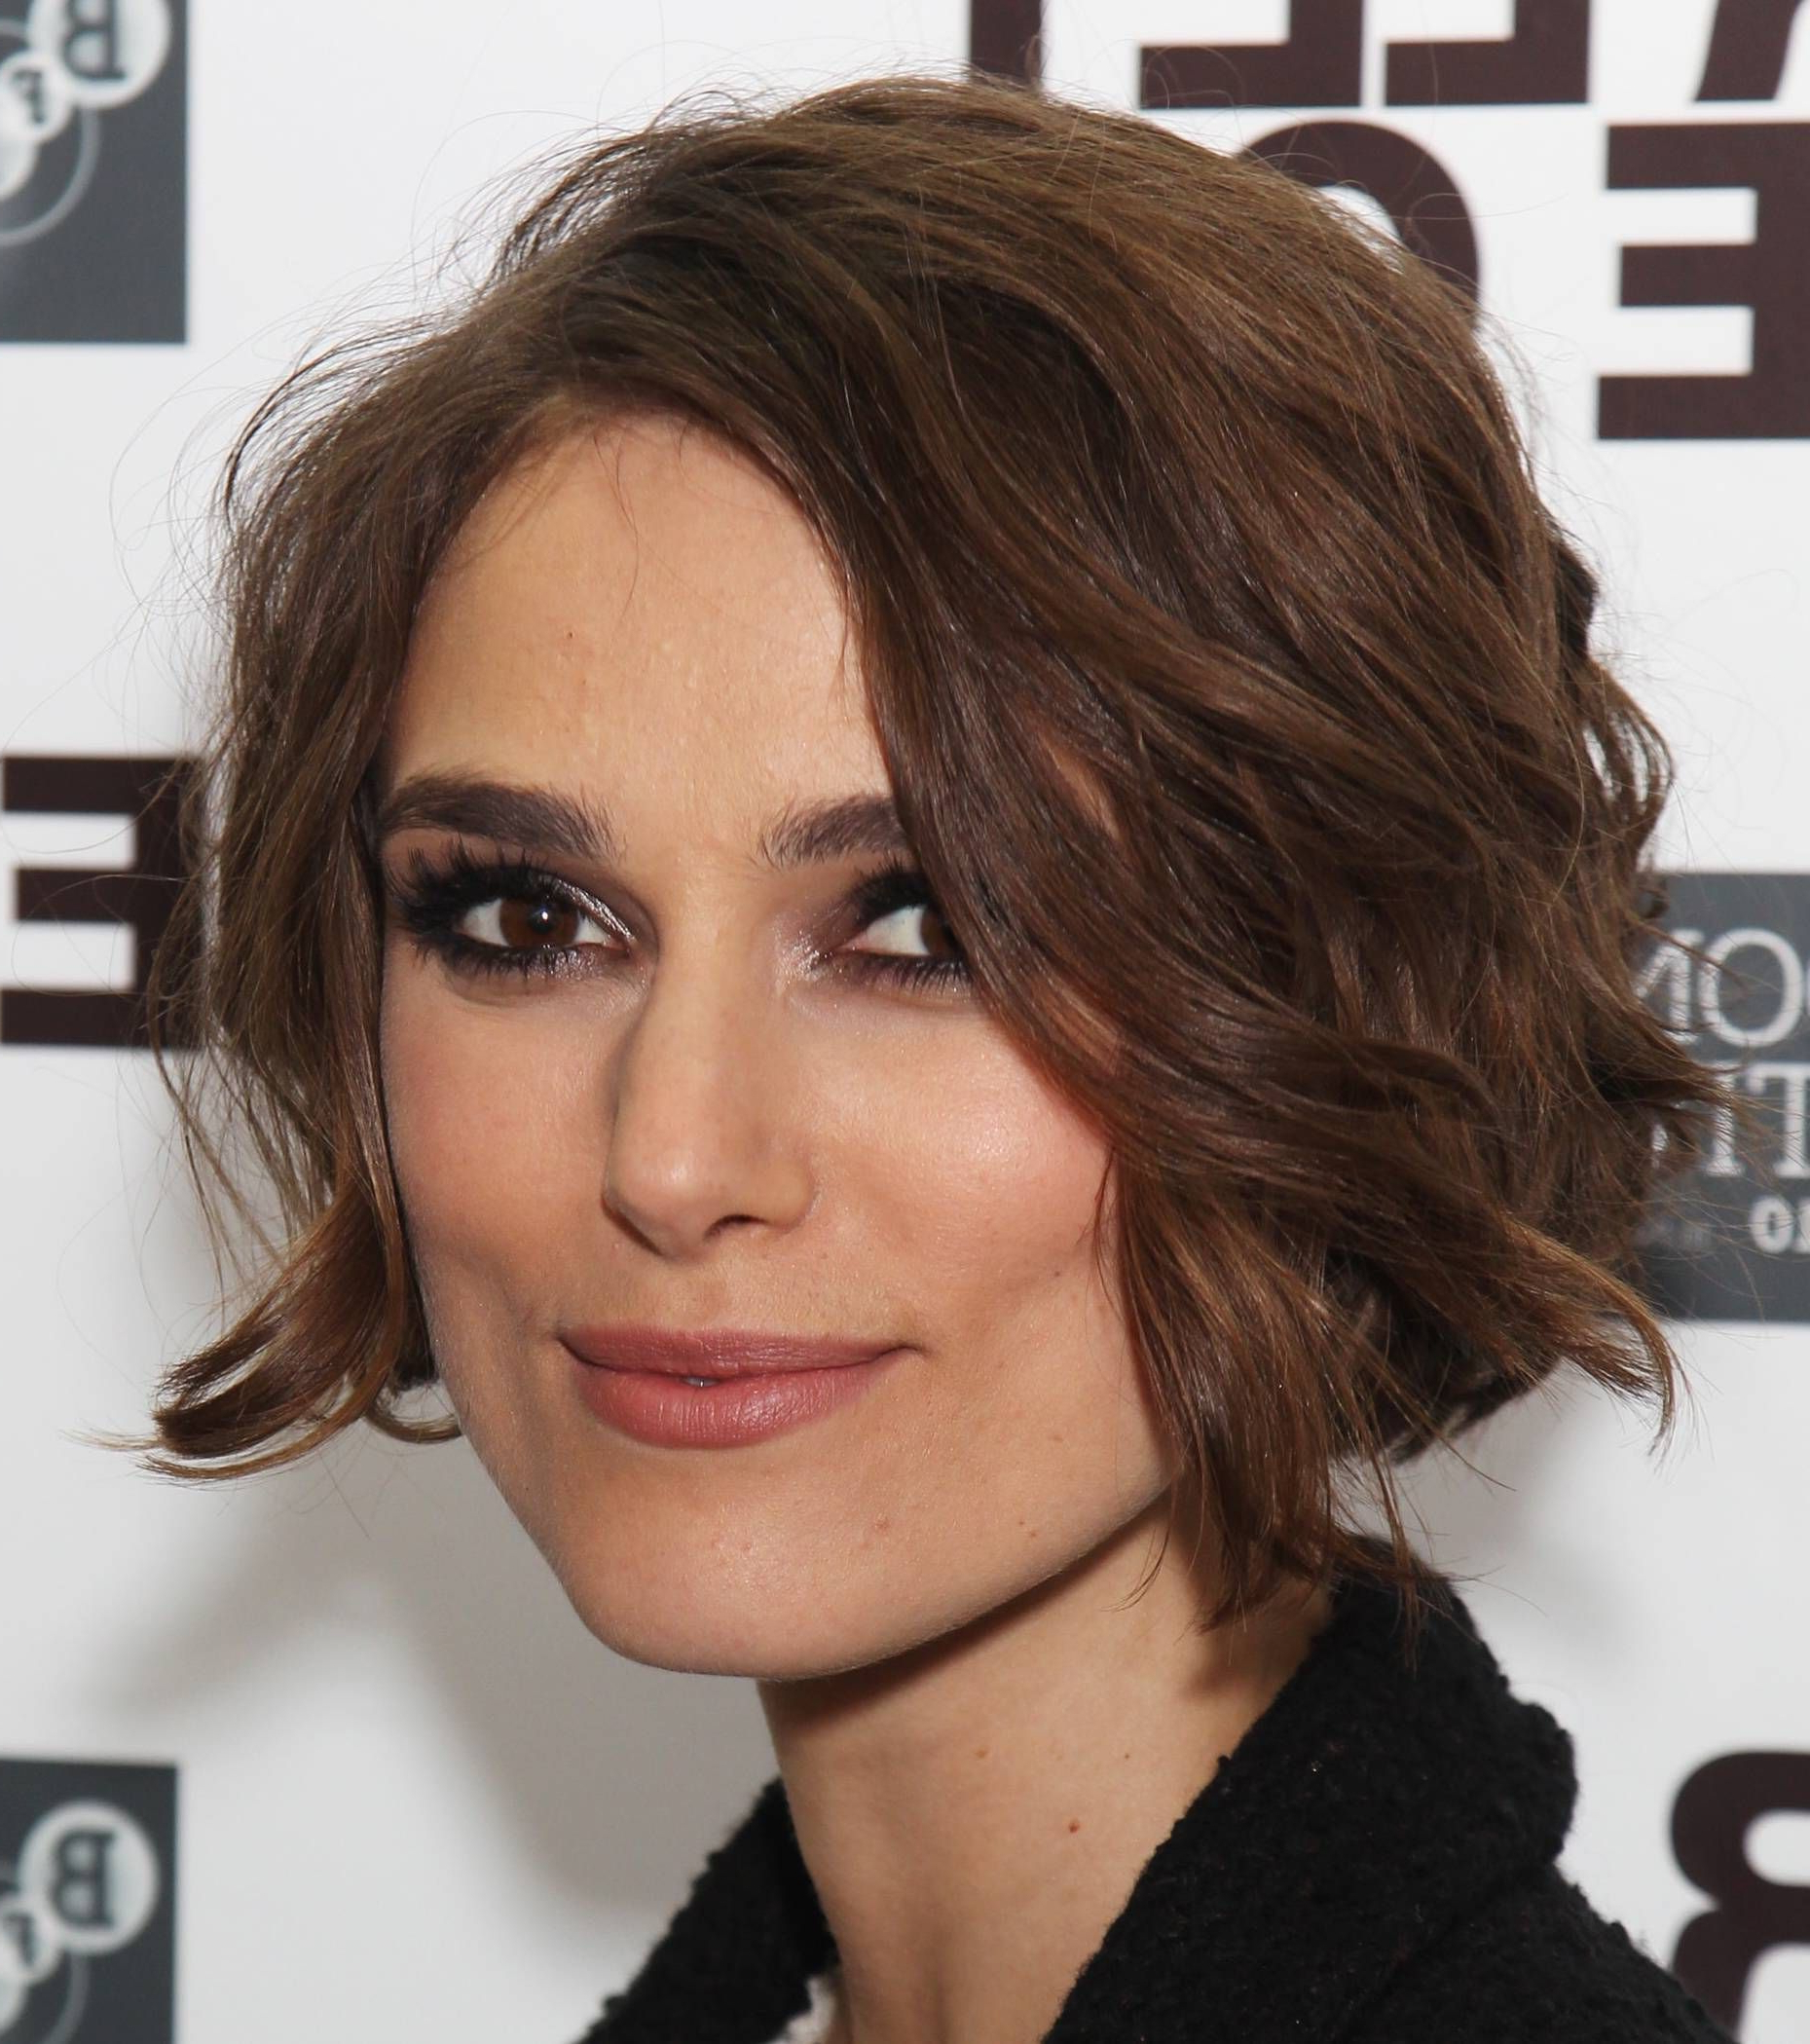 New Beauty Short Hairstyles Short Wavy Hairstyles Low Maintenance Within Easy Maintenance Short Haircuts (View 17 of 25)